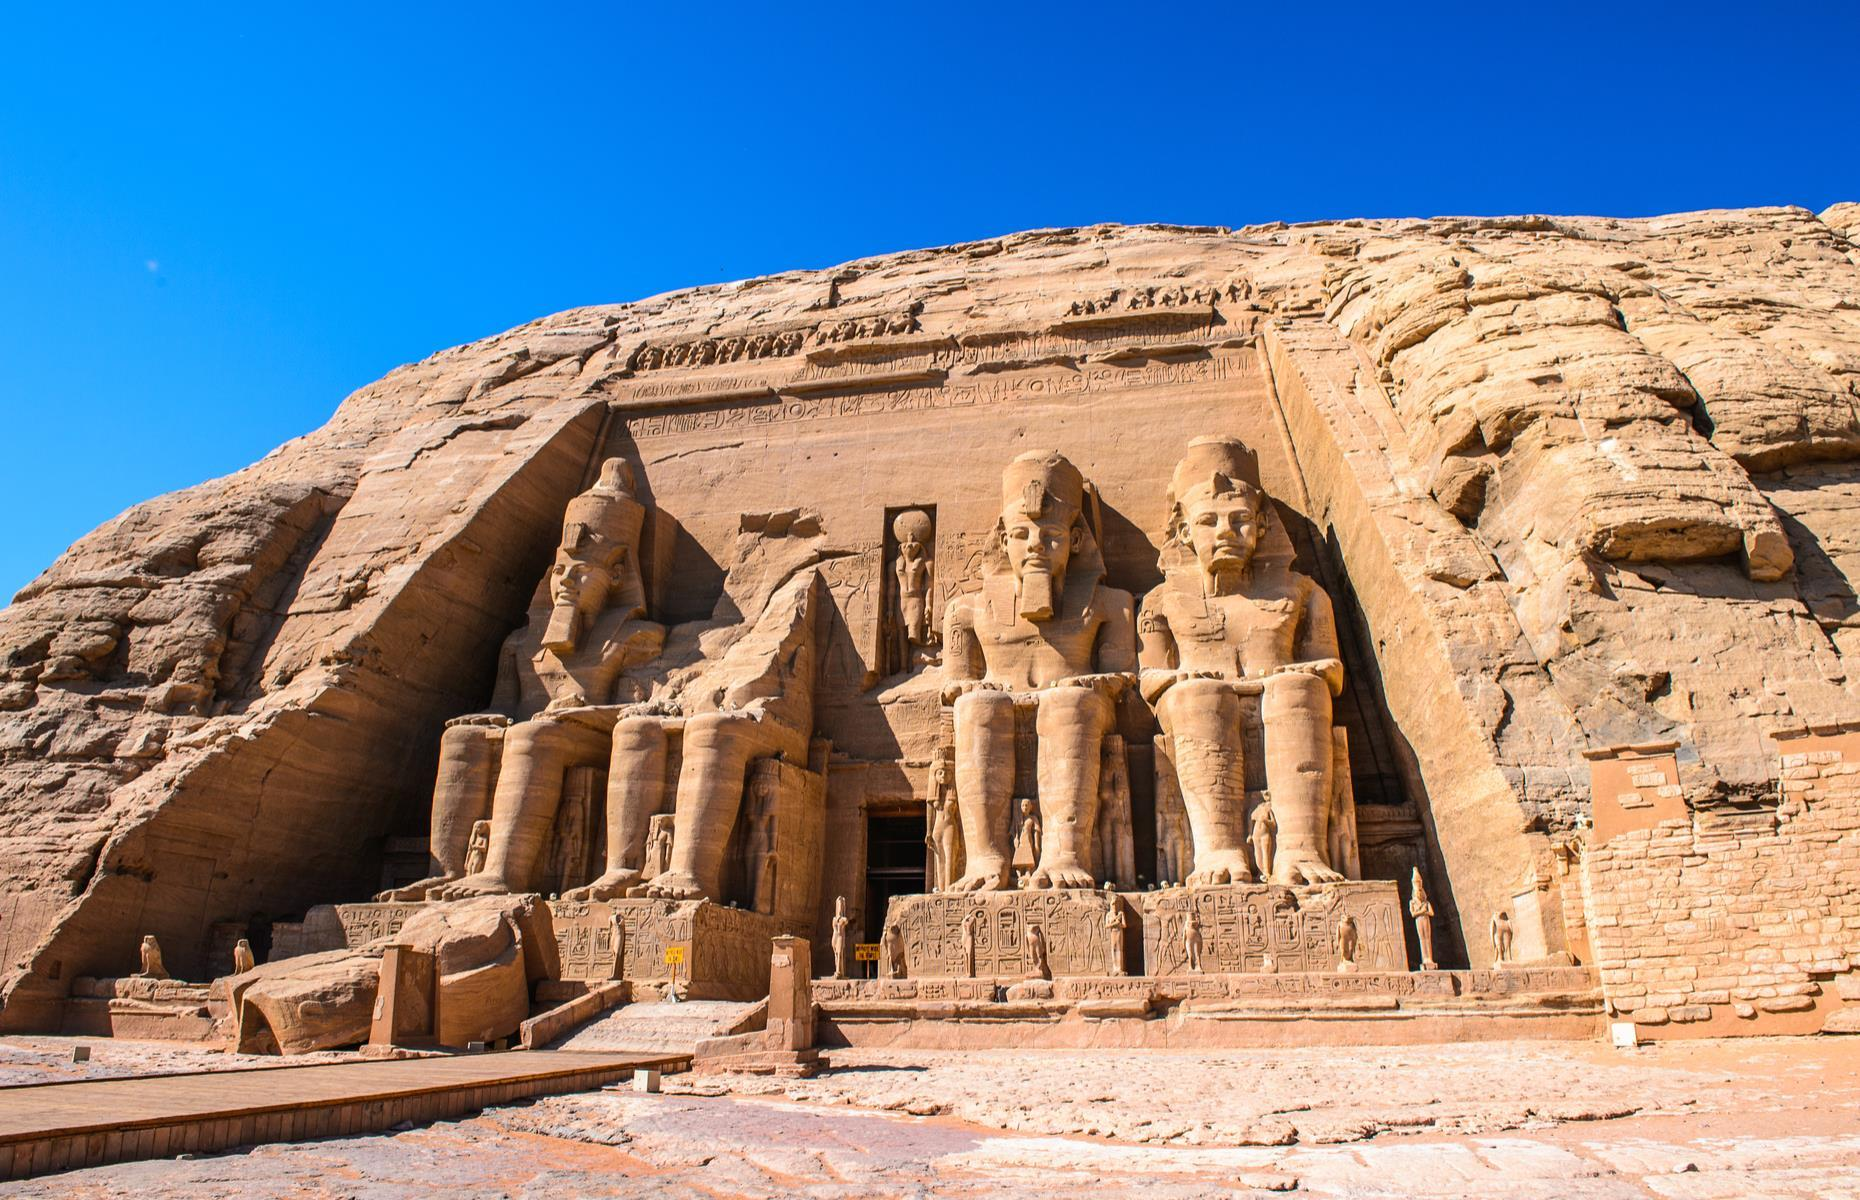 Slide 30 of 51: Painstakingly chipped into a mountainside, this imposing temple was completed in 1265 BC to commemorate the victory of Ramesses II and his queen Nefertari in the Battle of Kadesh. Set in the deep south of Egypt, it is most famous for its 65-foot-high (20m) depictions of the powerful pharaoh.The mighty rock-hewn temple lay forgotten until it was rediscovered by Swiss traveler Johann Ludwigin 1813. When the Aswan Damwas built during the 1960s, the templewas carefullydismantled and moved to higher ground to save it from flooding. Today, the mighty monumentlooms safely inits remote location.